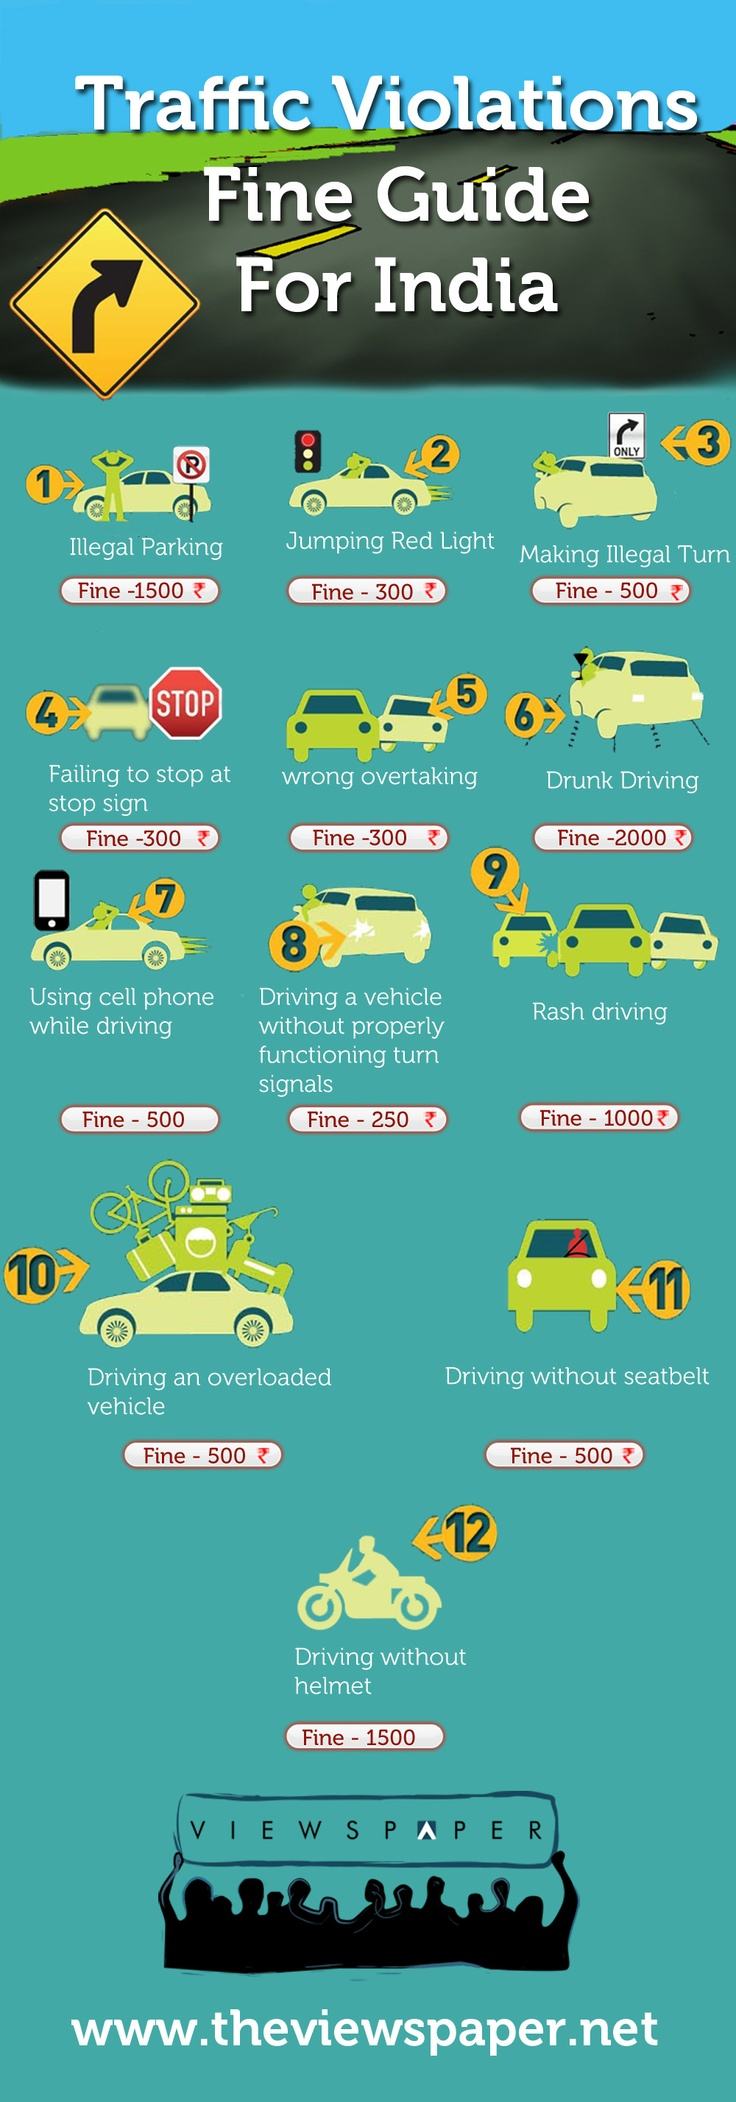 Traffic Violations Fine Guide For India – Infographic